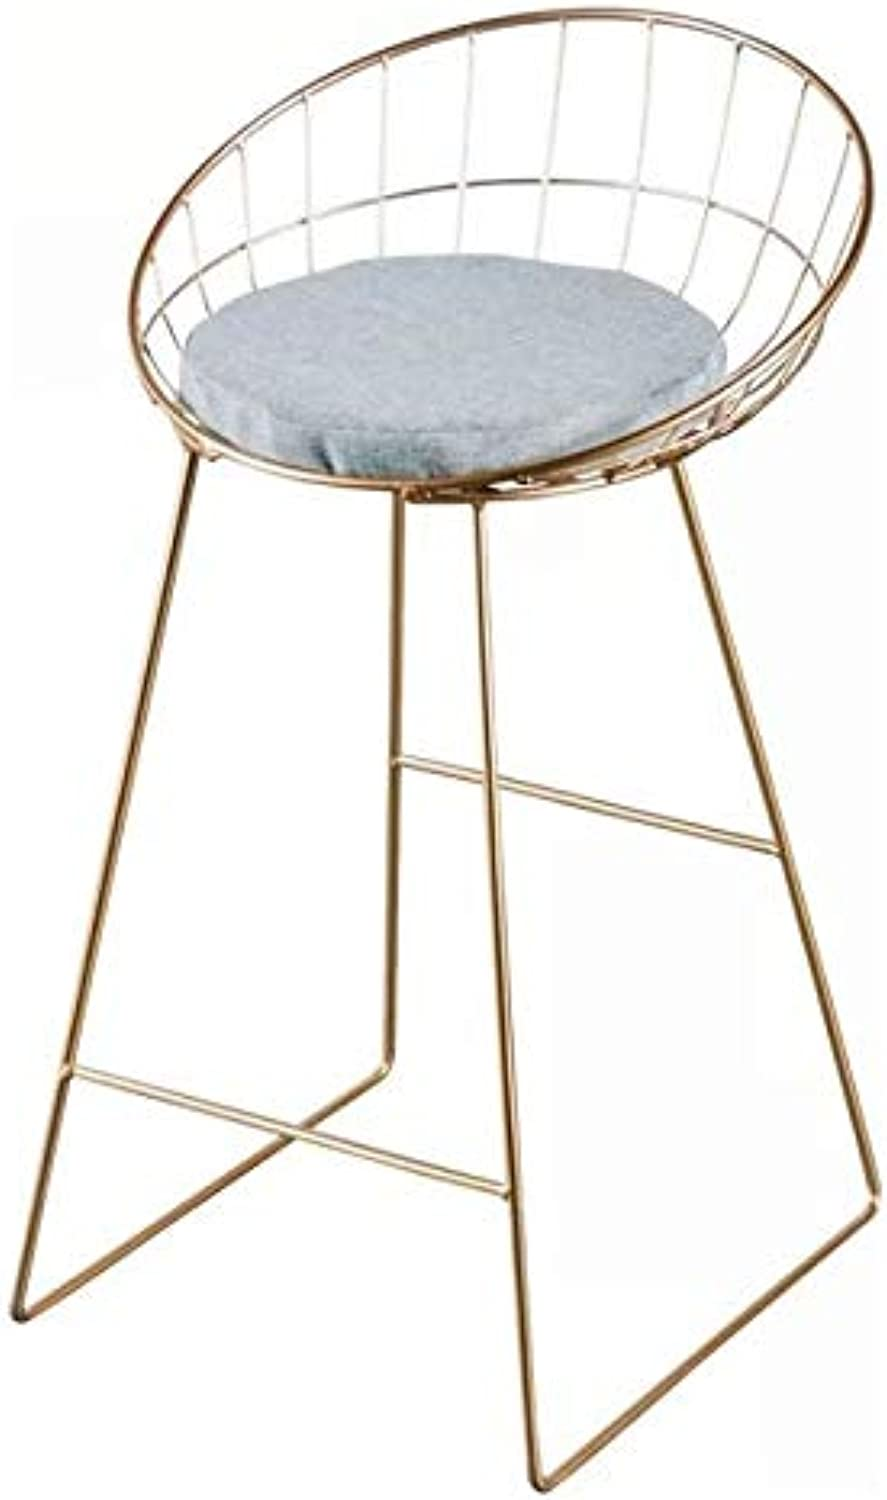 Heavenly Collection Ariel bar Stool in gold Base with White PU, Stainless Steel (33  H x 19.5  W x 21.5  D)